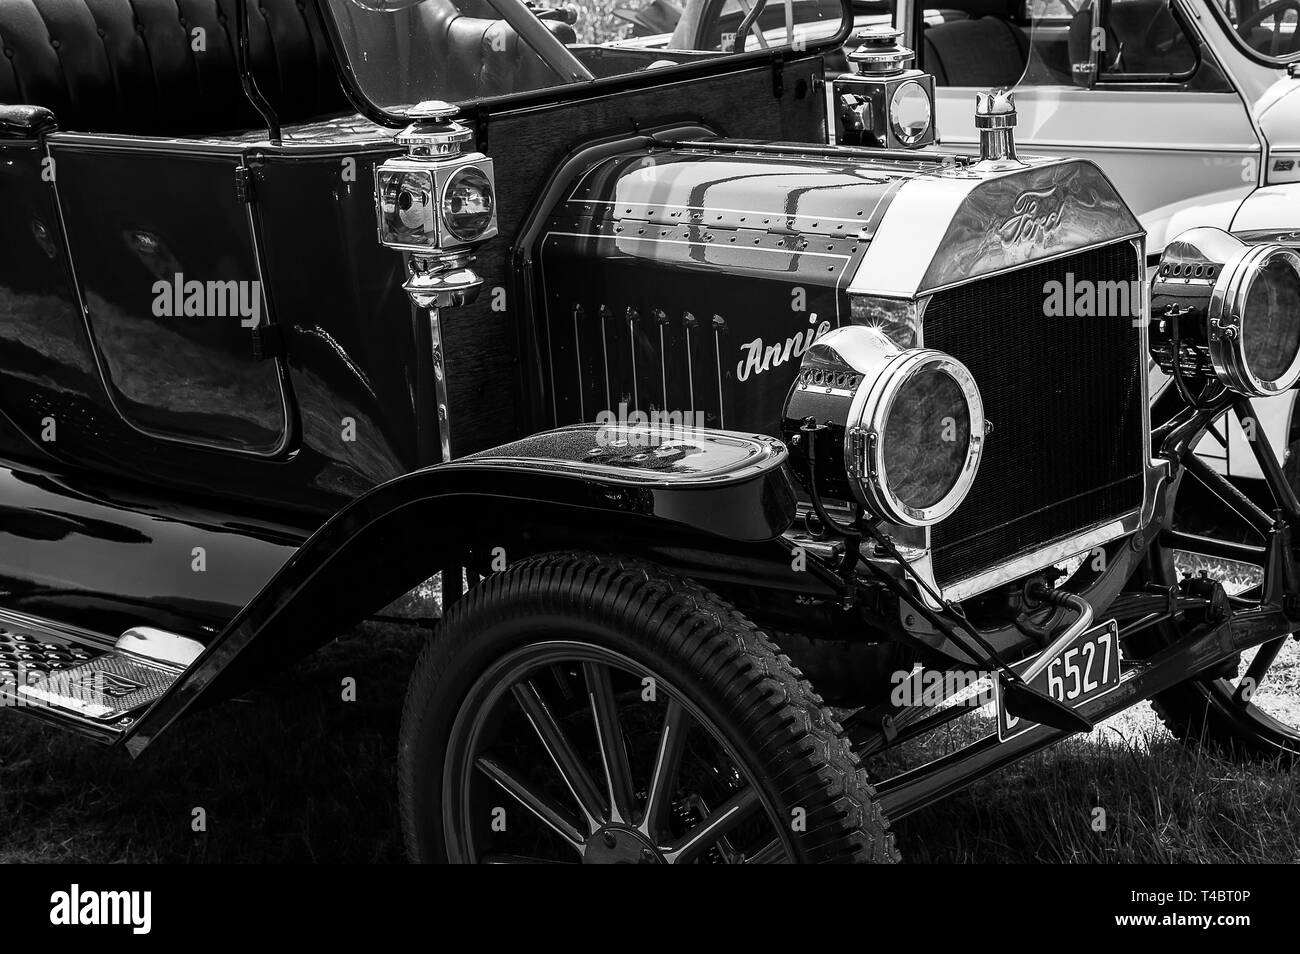 The front of a Ford Model T on display at a car show - Stock Image